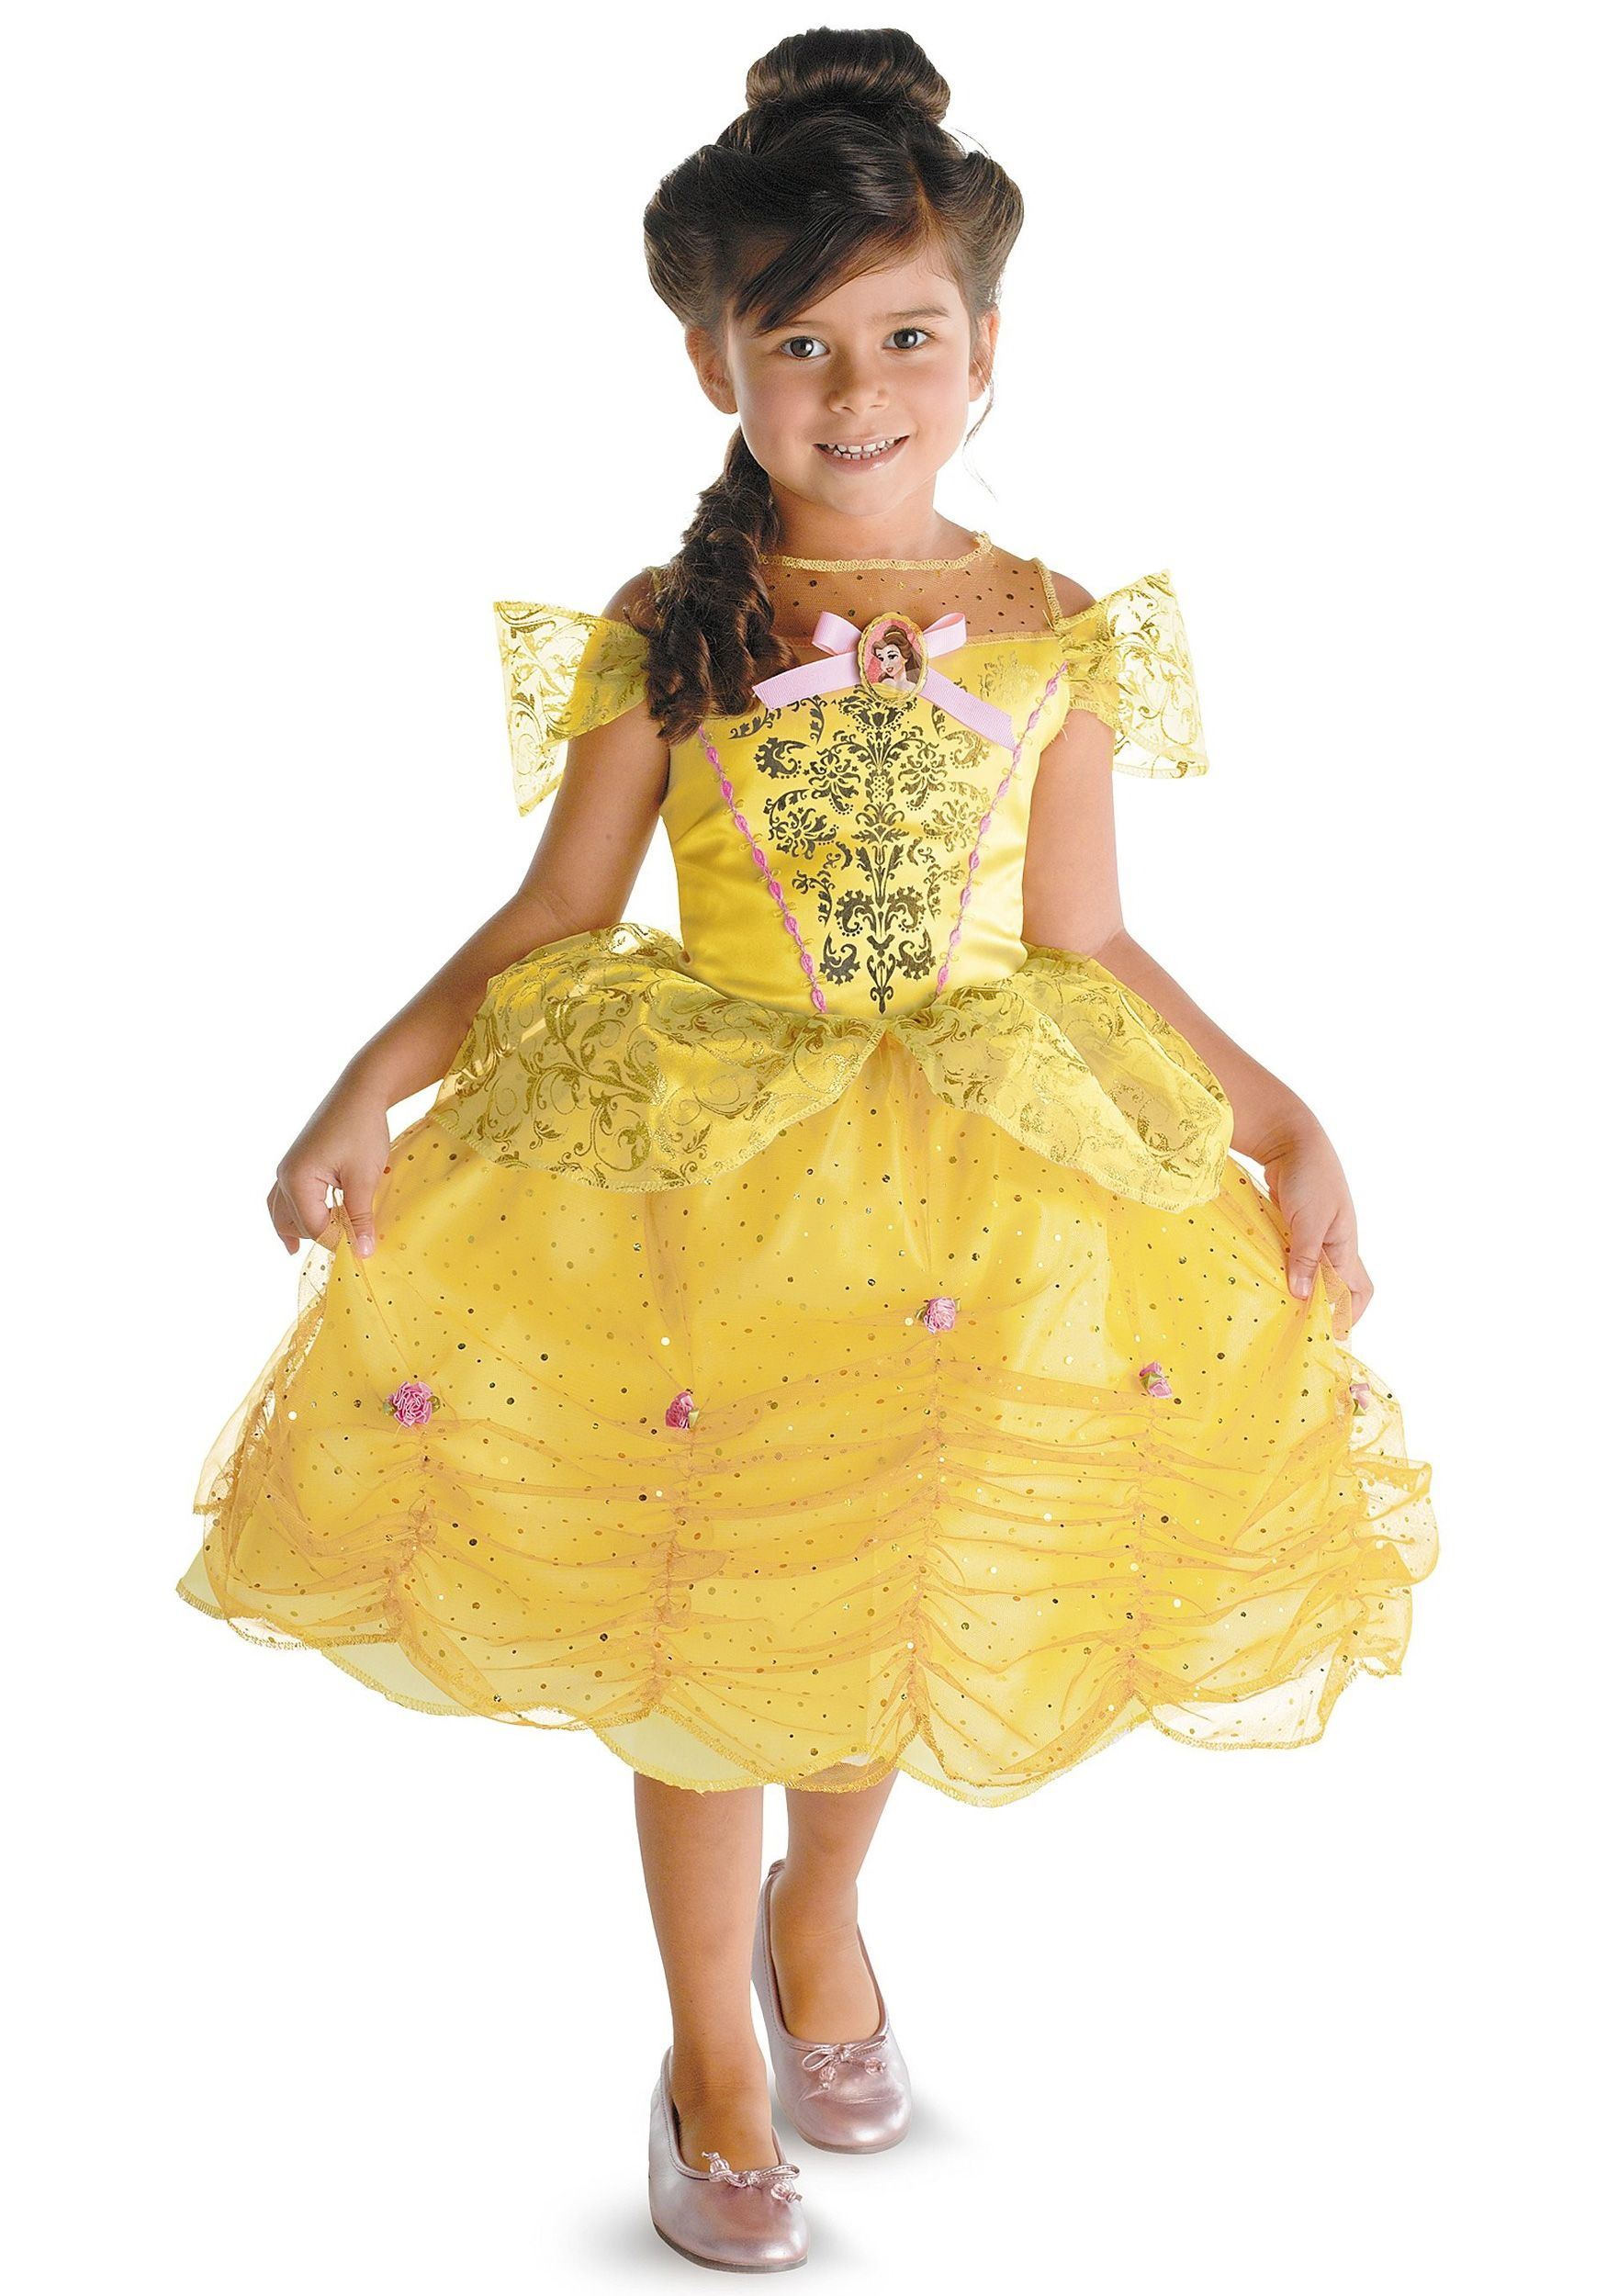 Details about Disney Girls Baby BELLE BEAUTY & the BEAST costume ...